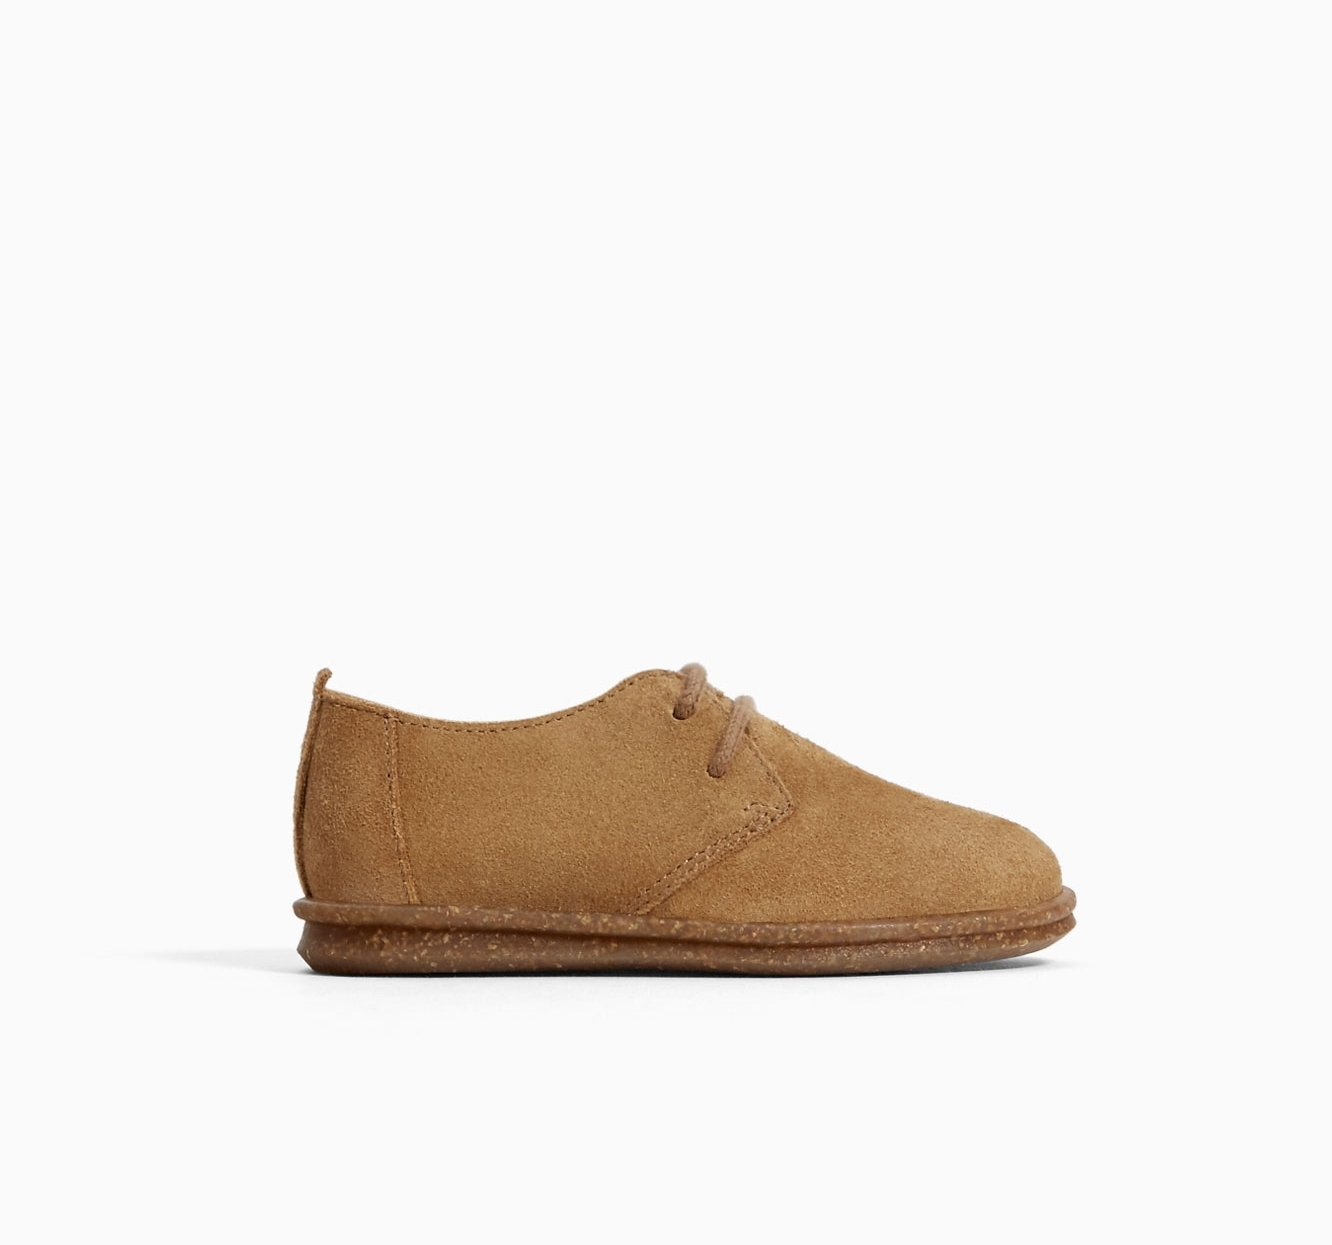 Leather Desert Shoes $59.95